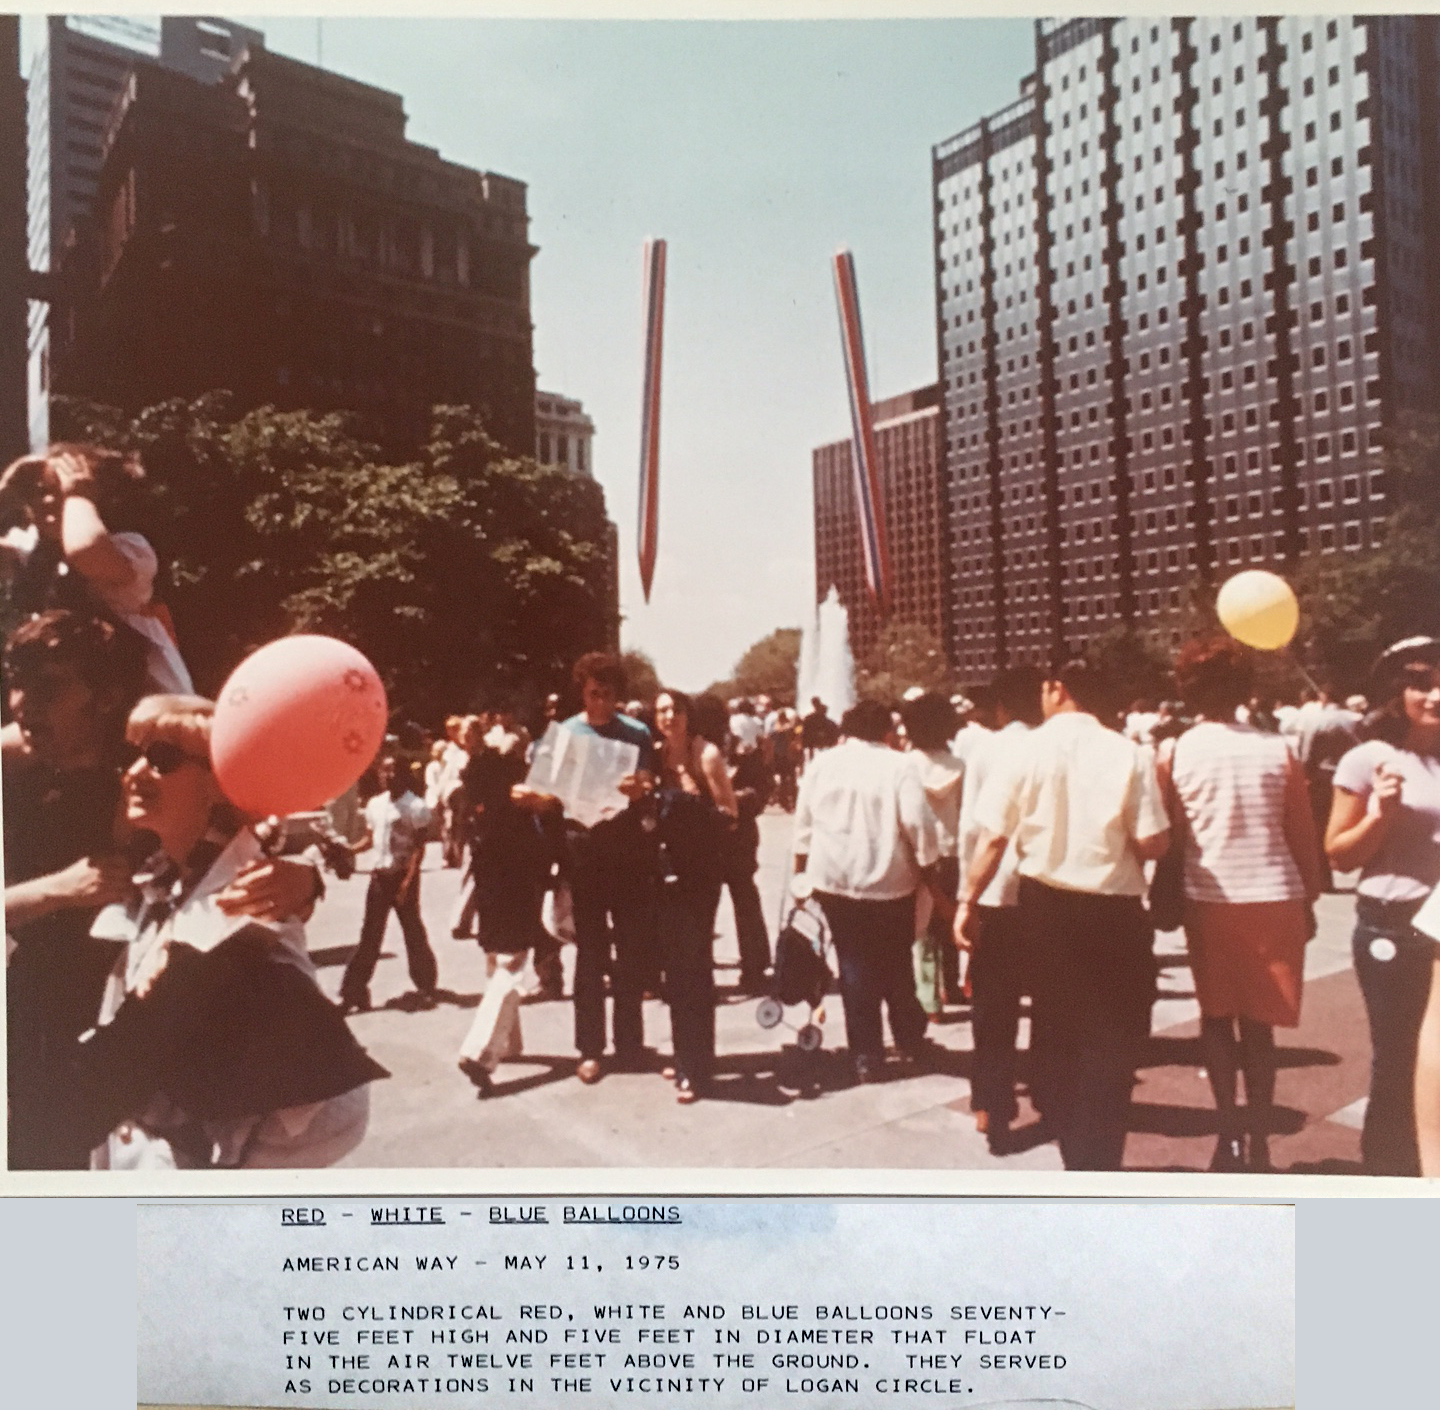 THE_AMERICAN_WAY_1975 Balloons